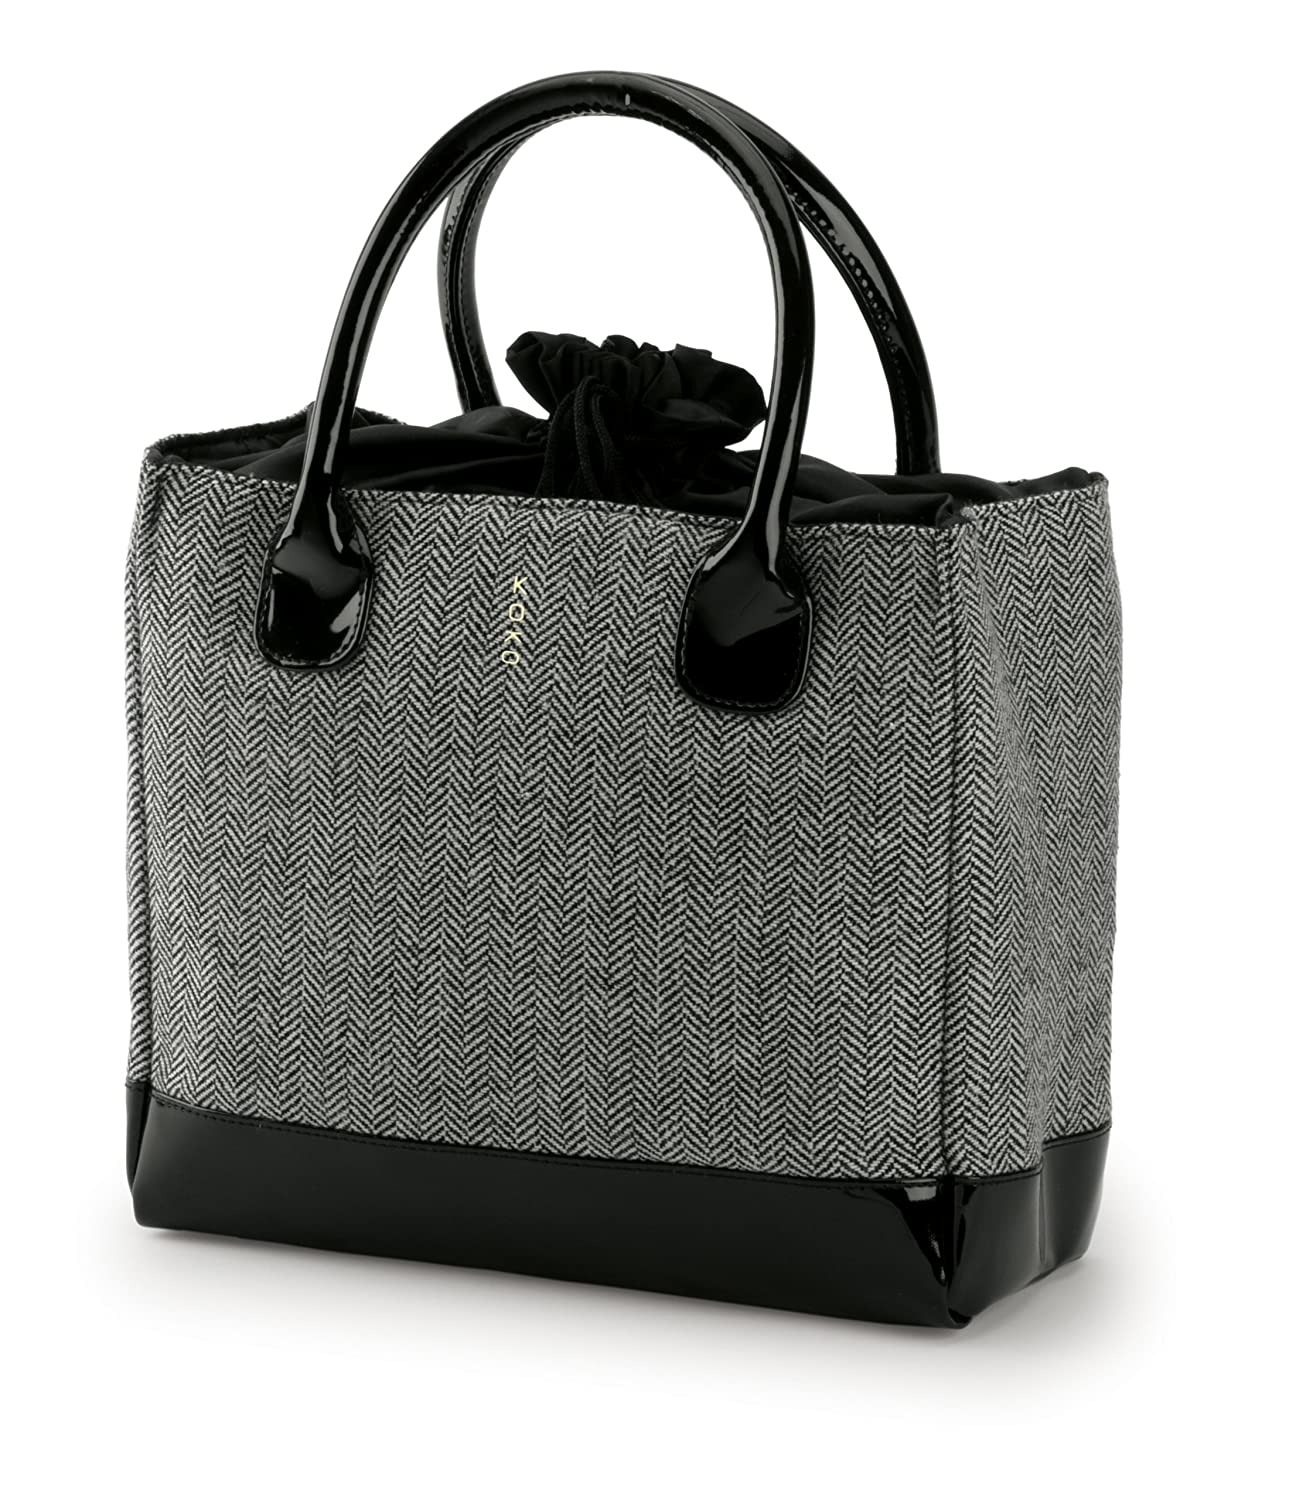 Koko Kate Lunch Bag, Black Tweed Polyester